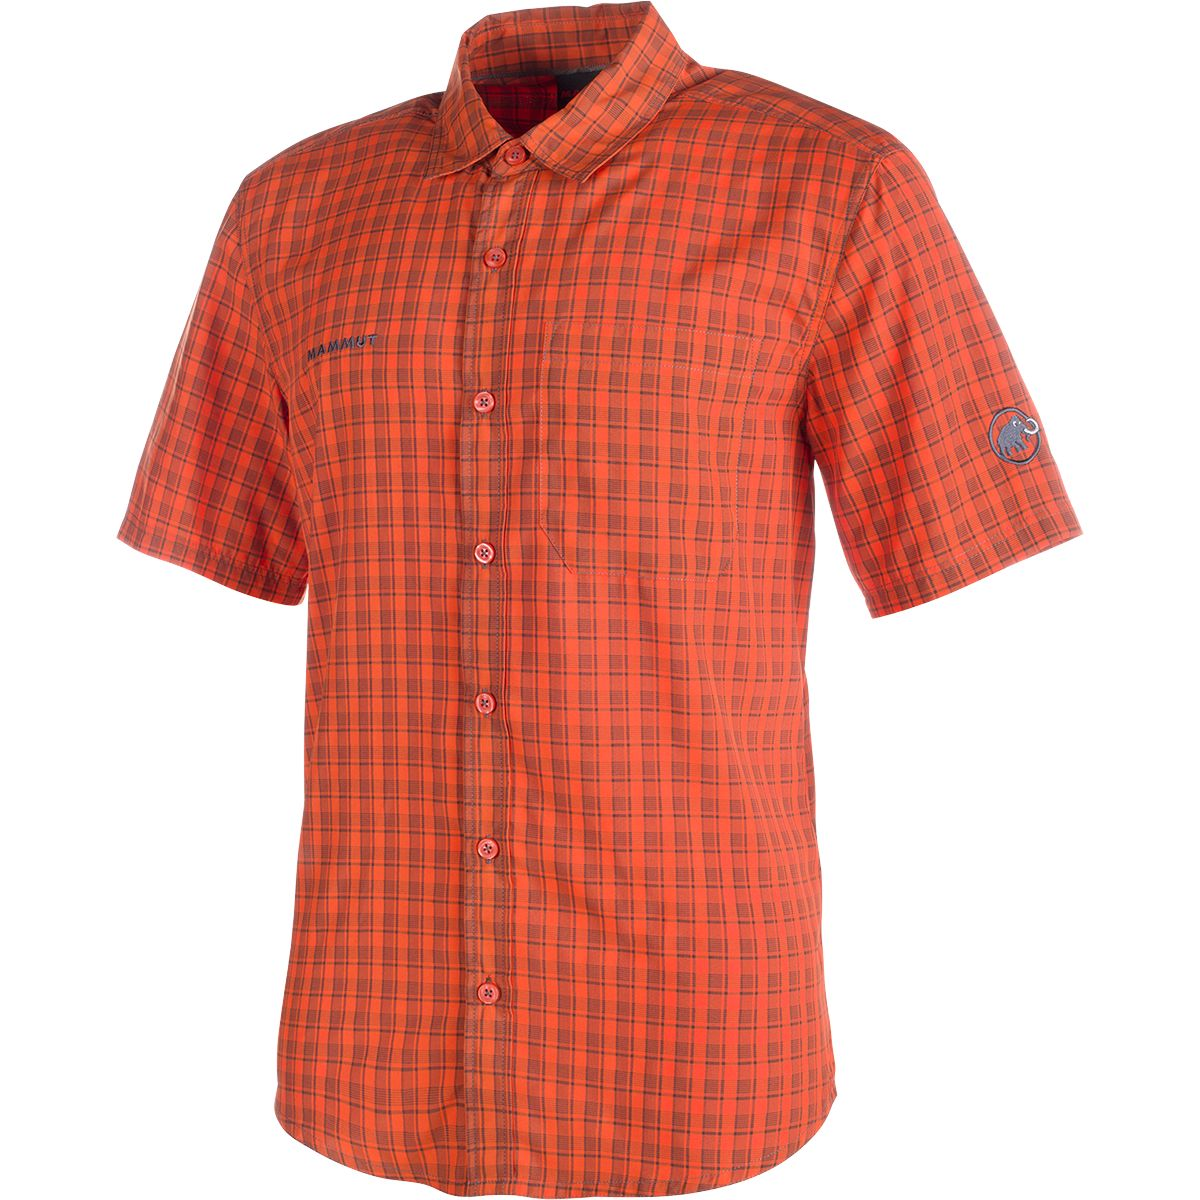 Mammut Herren Lenni Shirt dark orange-titanium XL 1030-01830-2152-XL